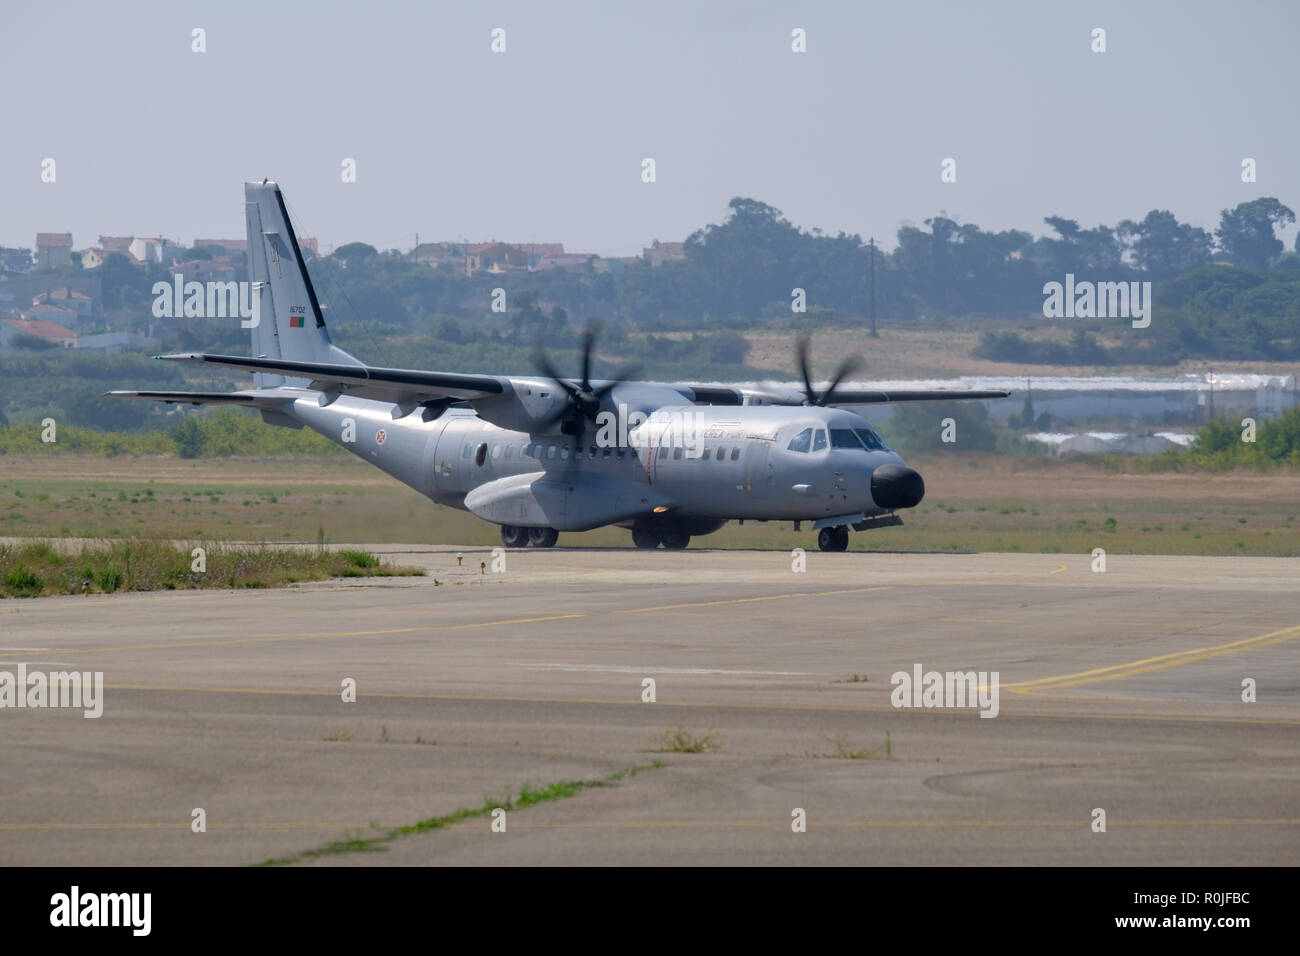 Portuguese Air Force EADS C-295M airplane at the Sintra Air Base, Portugal, Europe - Stock Image